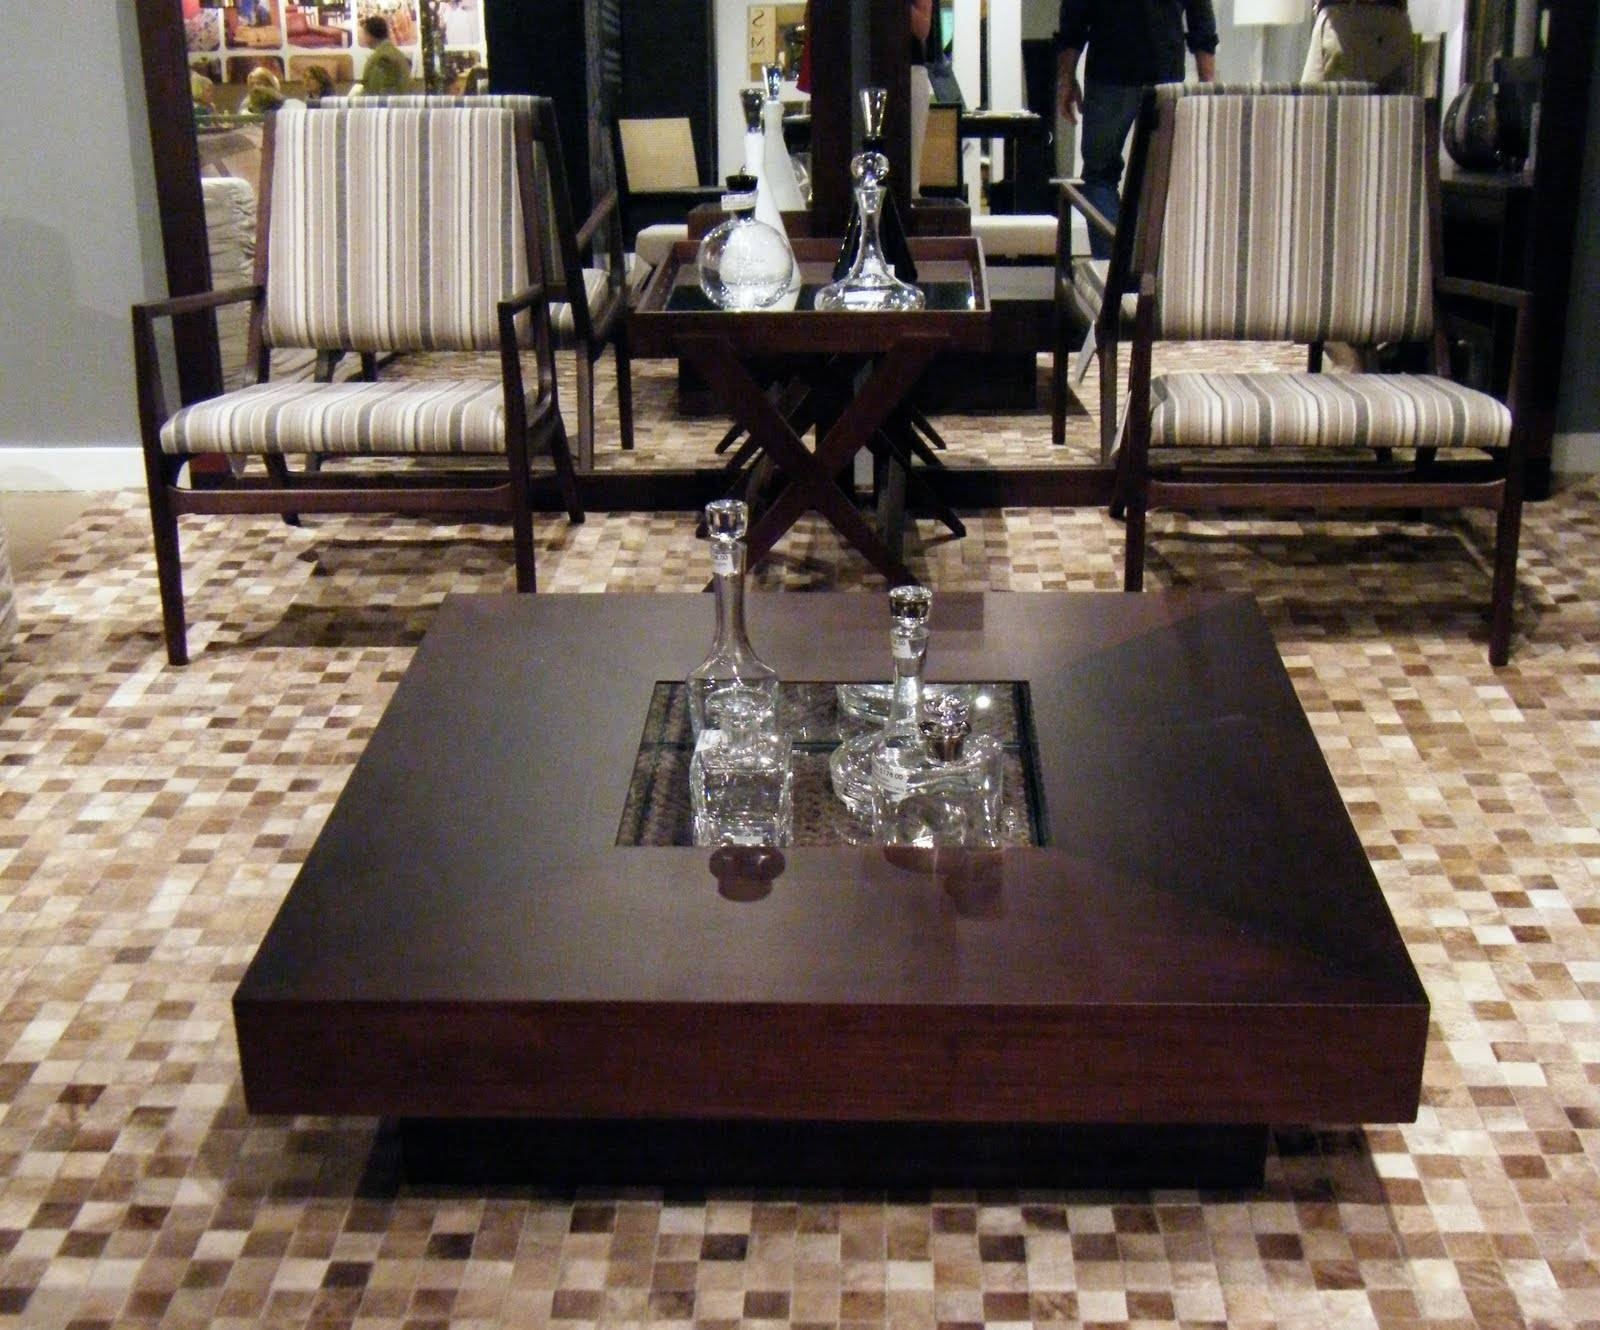 Modern Low Profile Coffee Tables | Coffee Tables Decoration throughout Square Low Coffee Tables (Image 16 of 20)